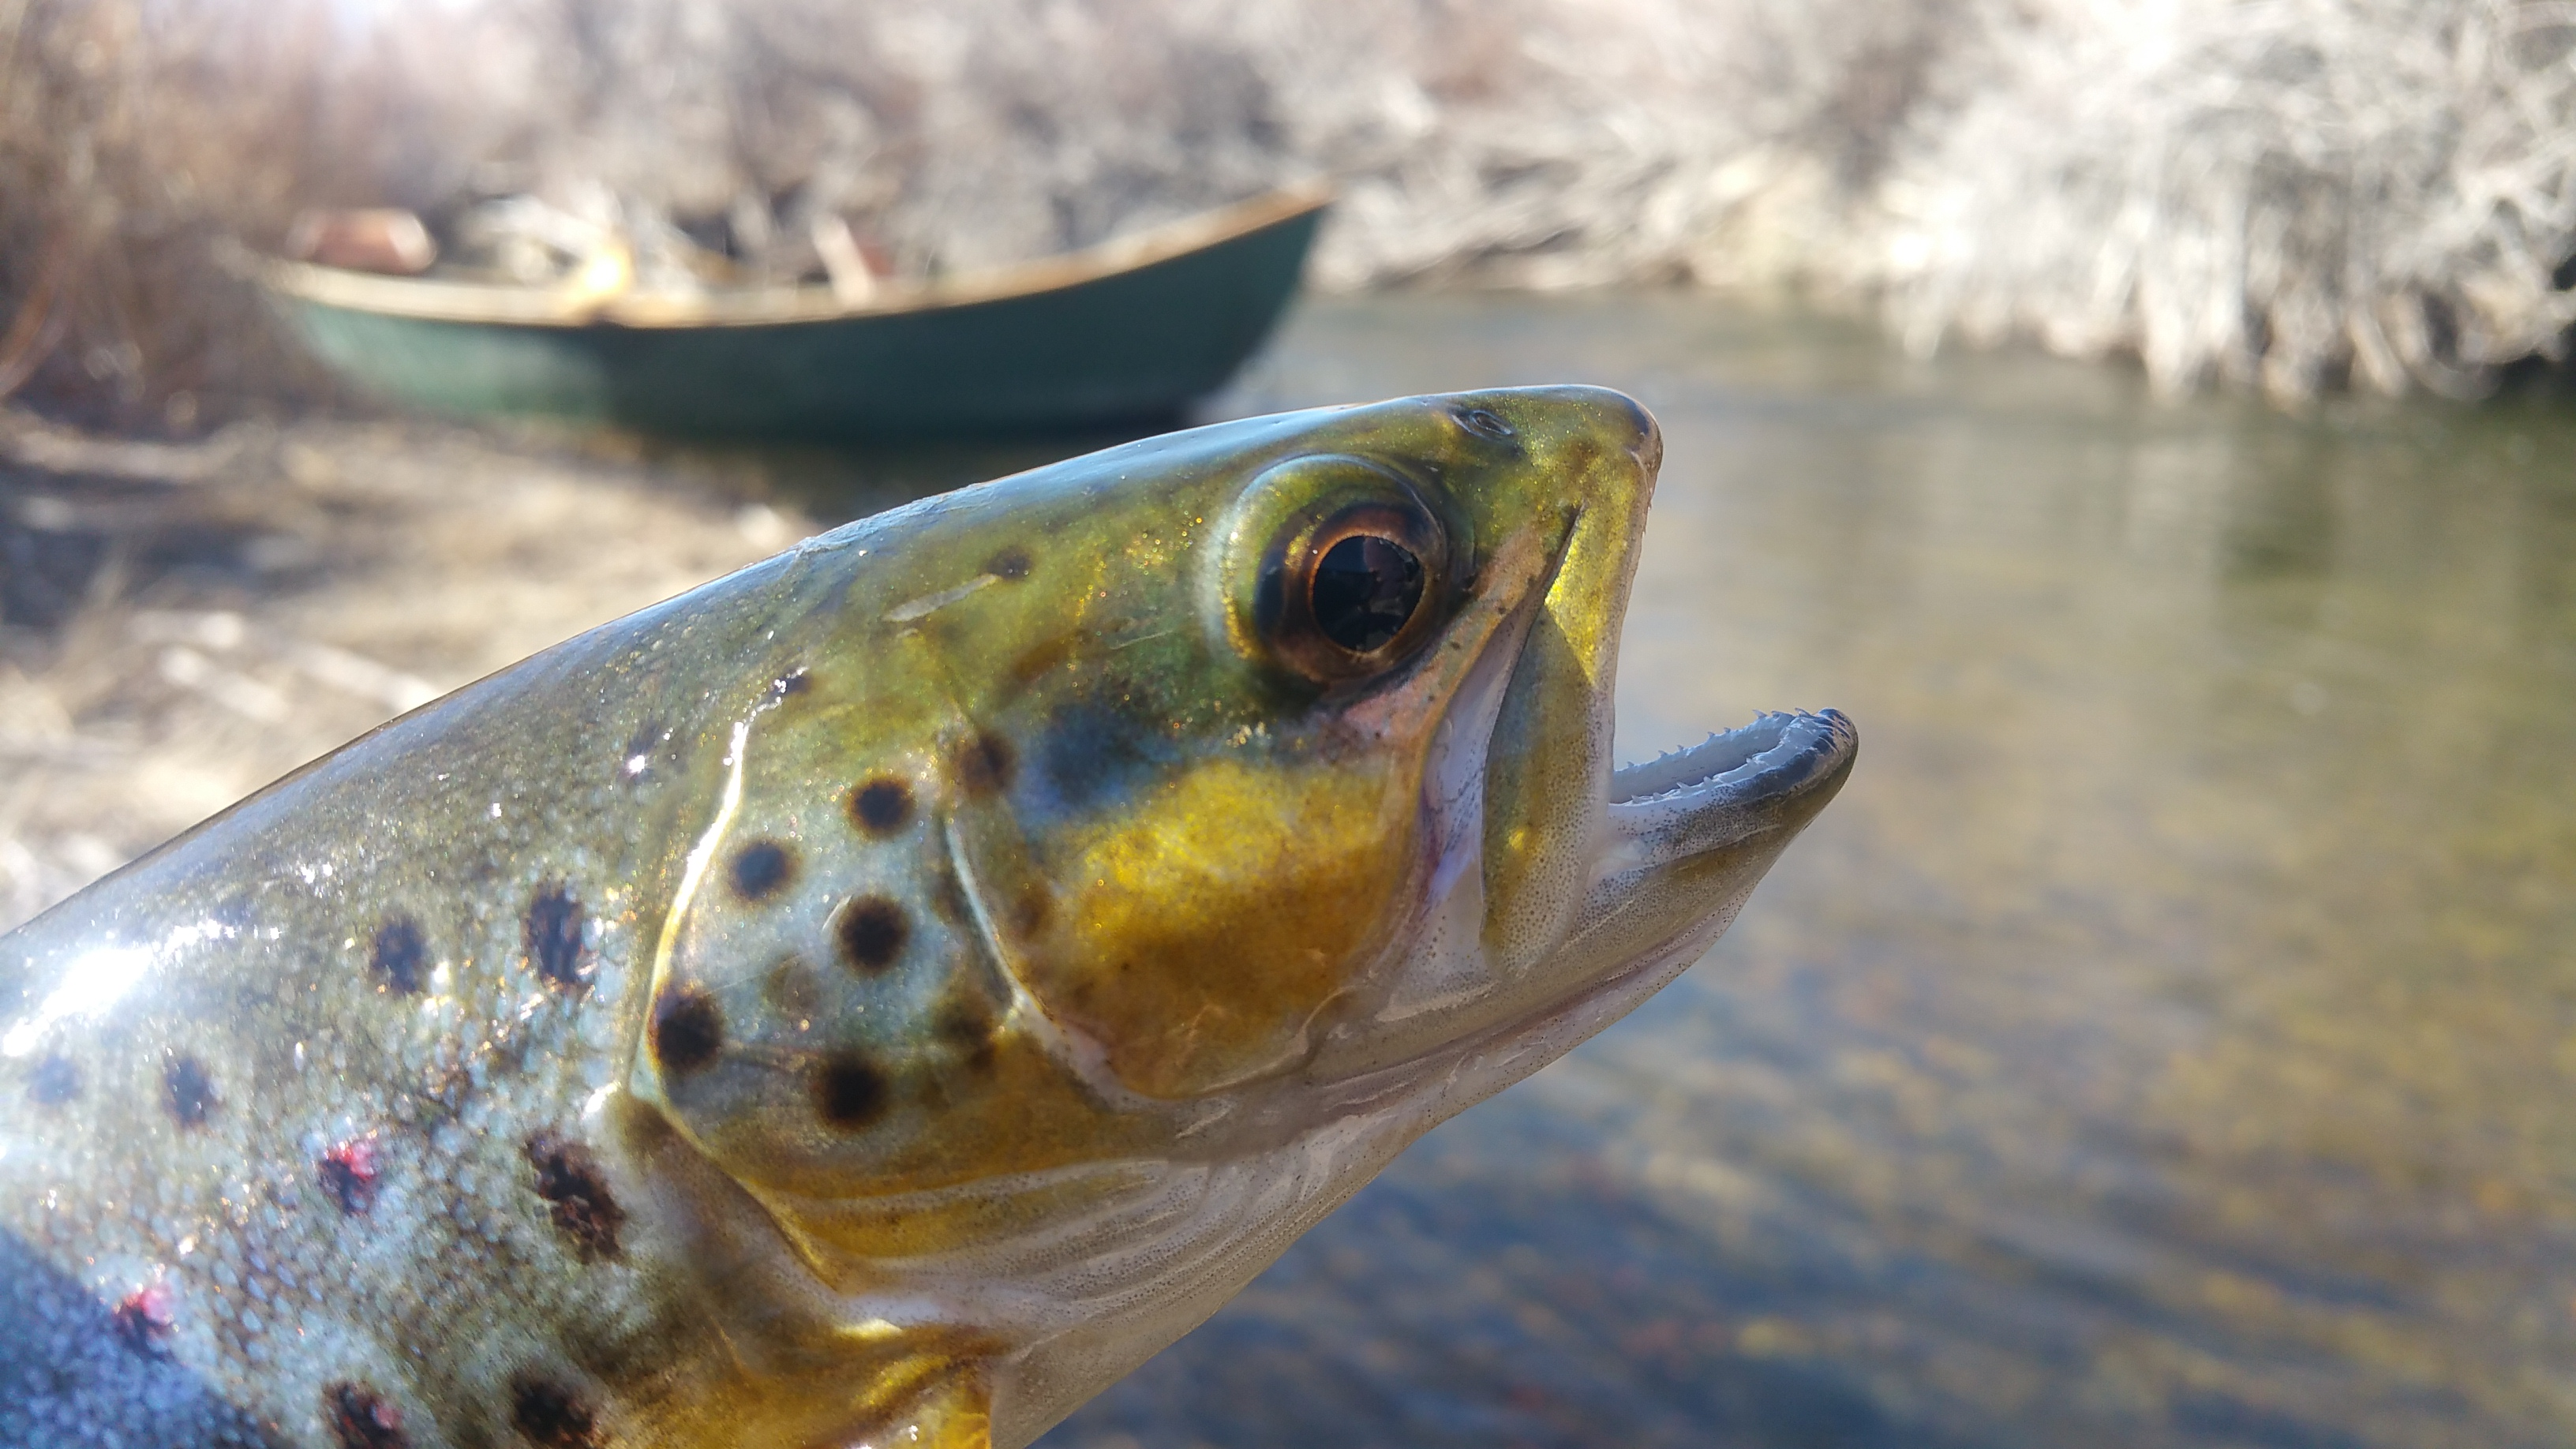 Lower owens river fly fishing report bishop ca for Sierra fish in english